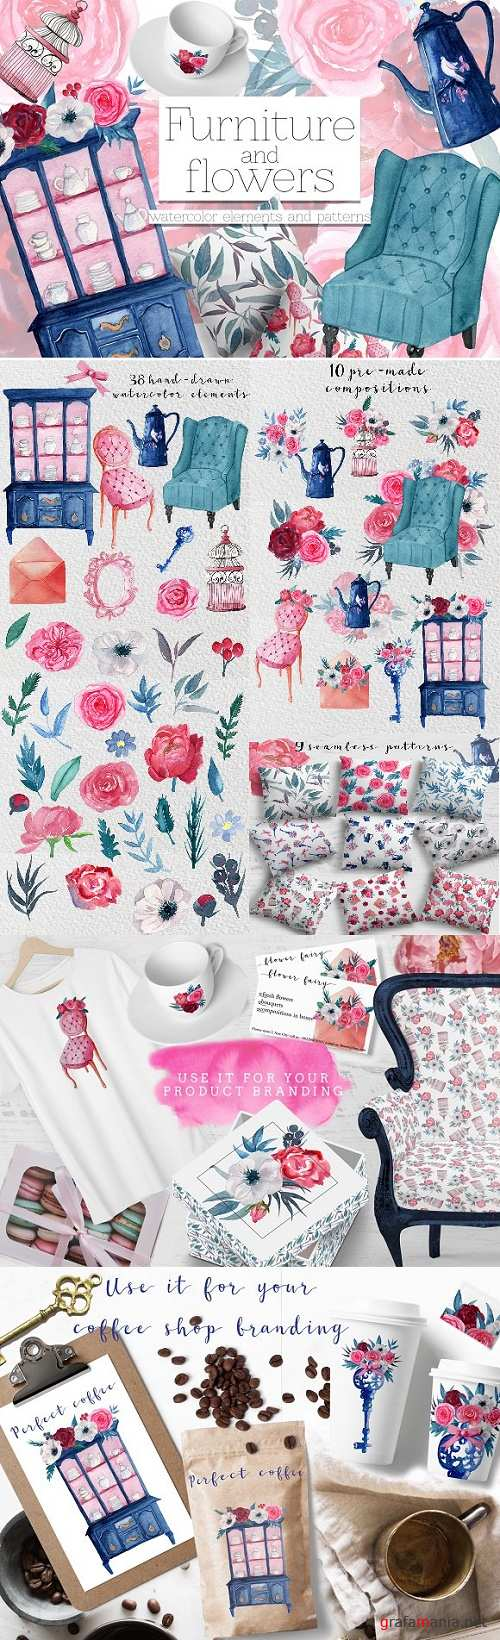 Furniture & Flowers Watercolor Set - 2384949